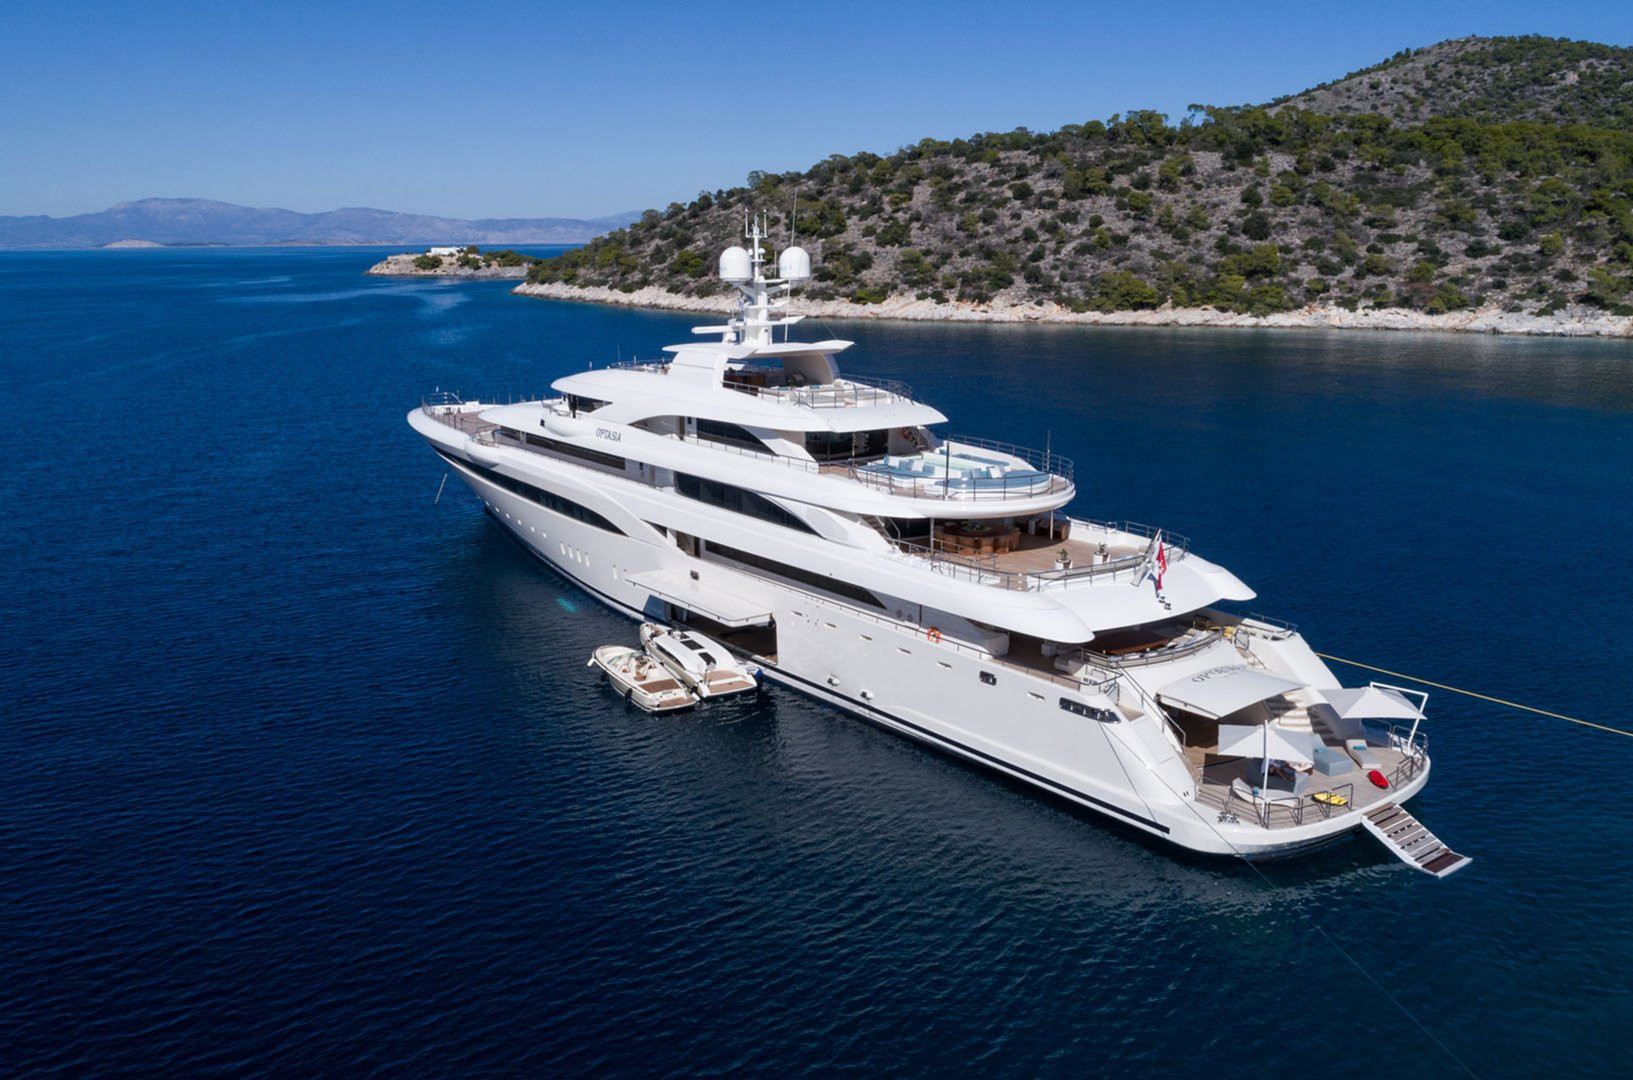 Mega Yacht O'PTASIA - on charter with all the toys and beach club laid out